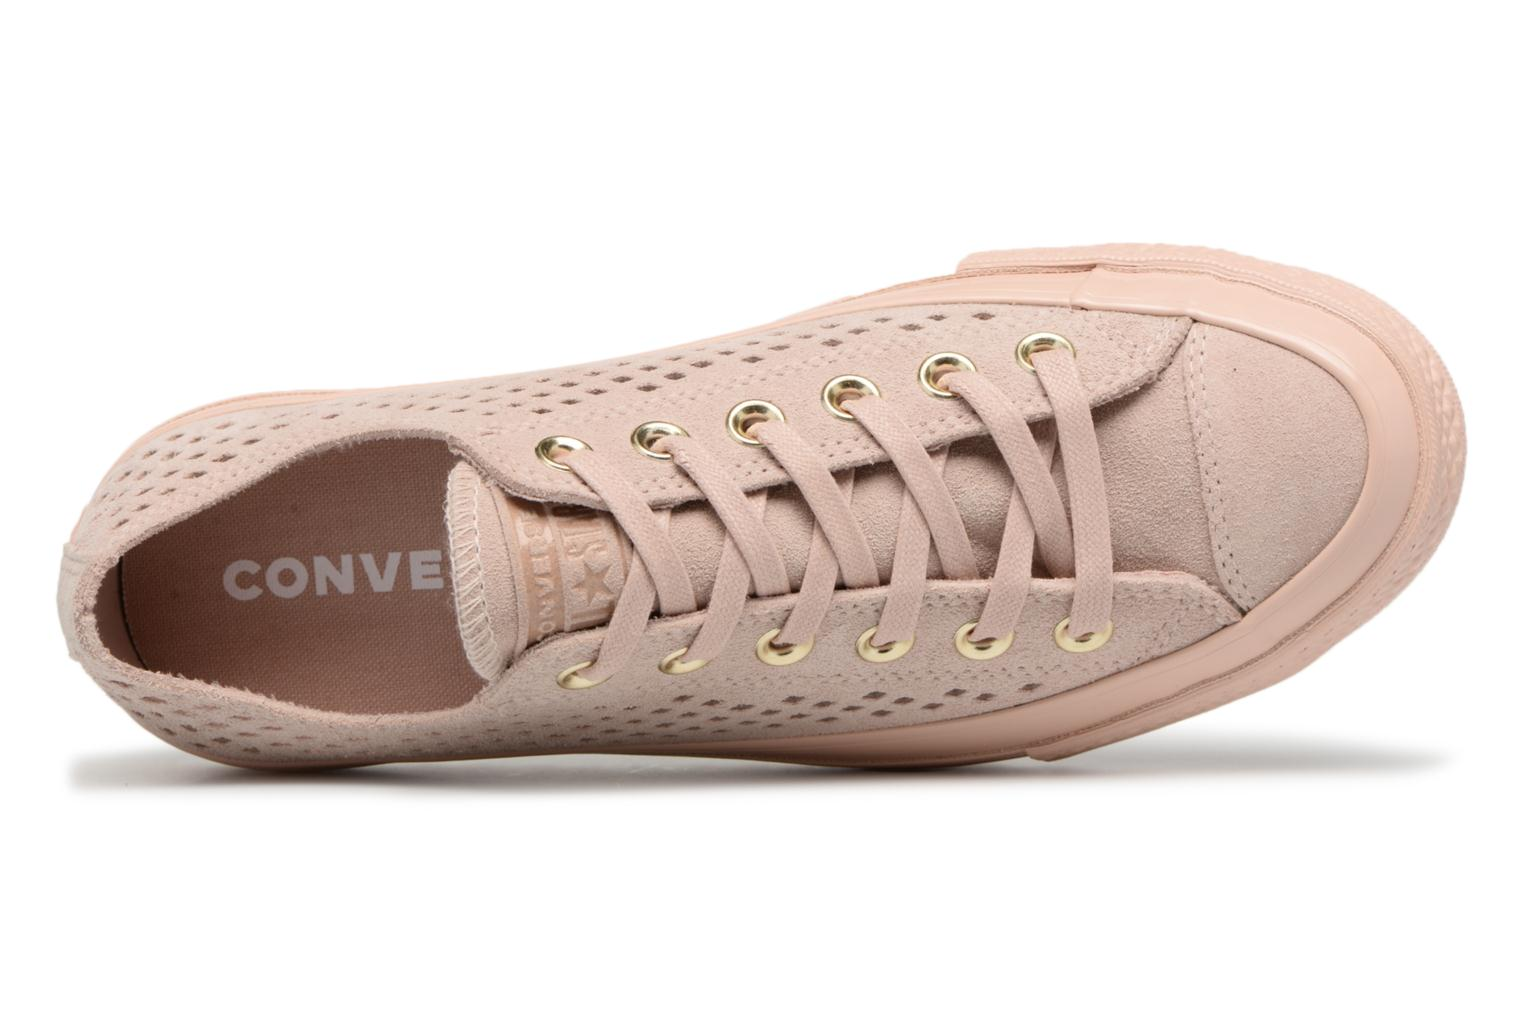 Mono Beige Lift All Particle Taylor Ox Ripple Perf Converse